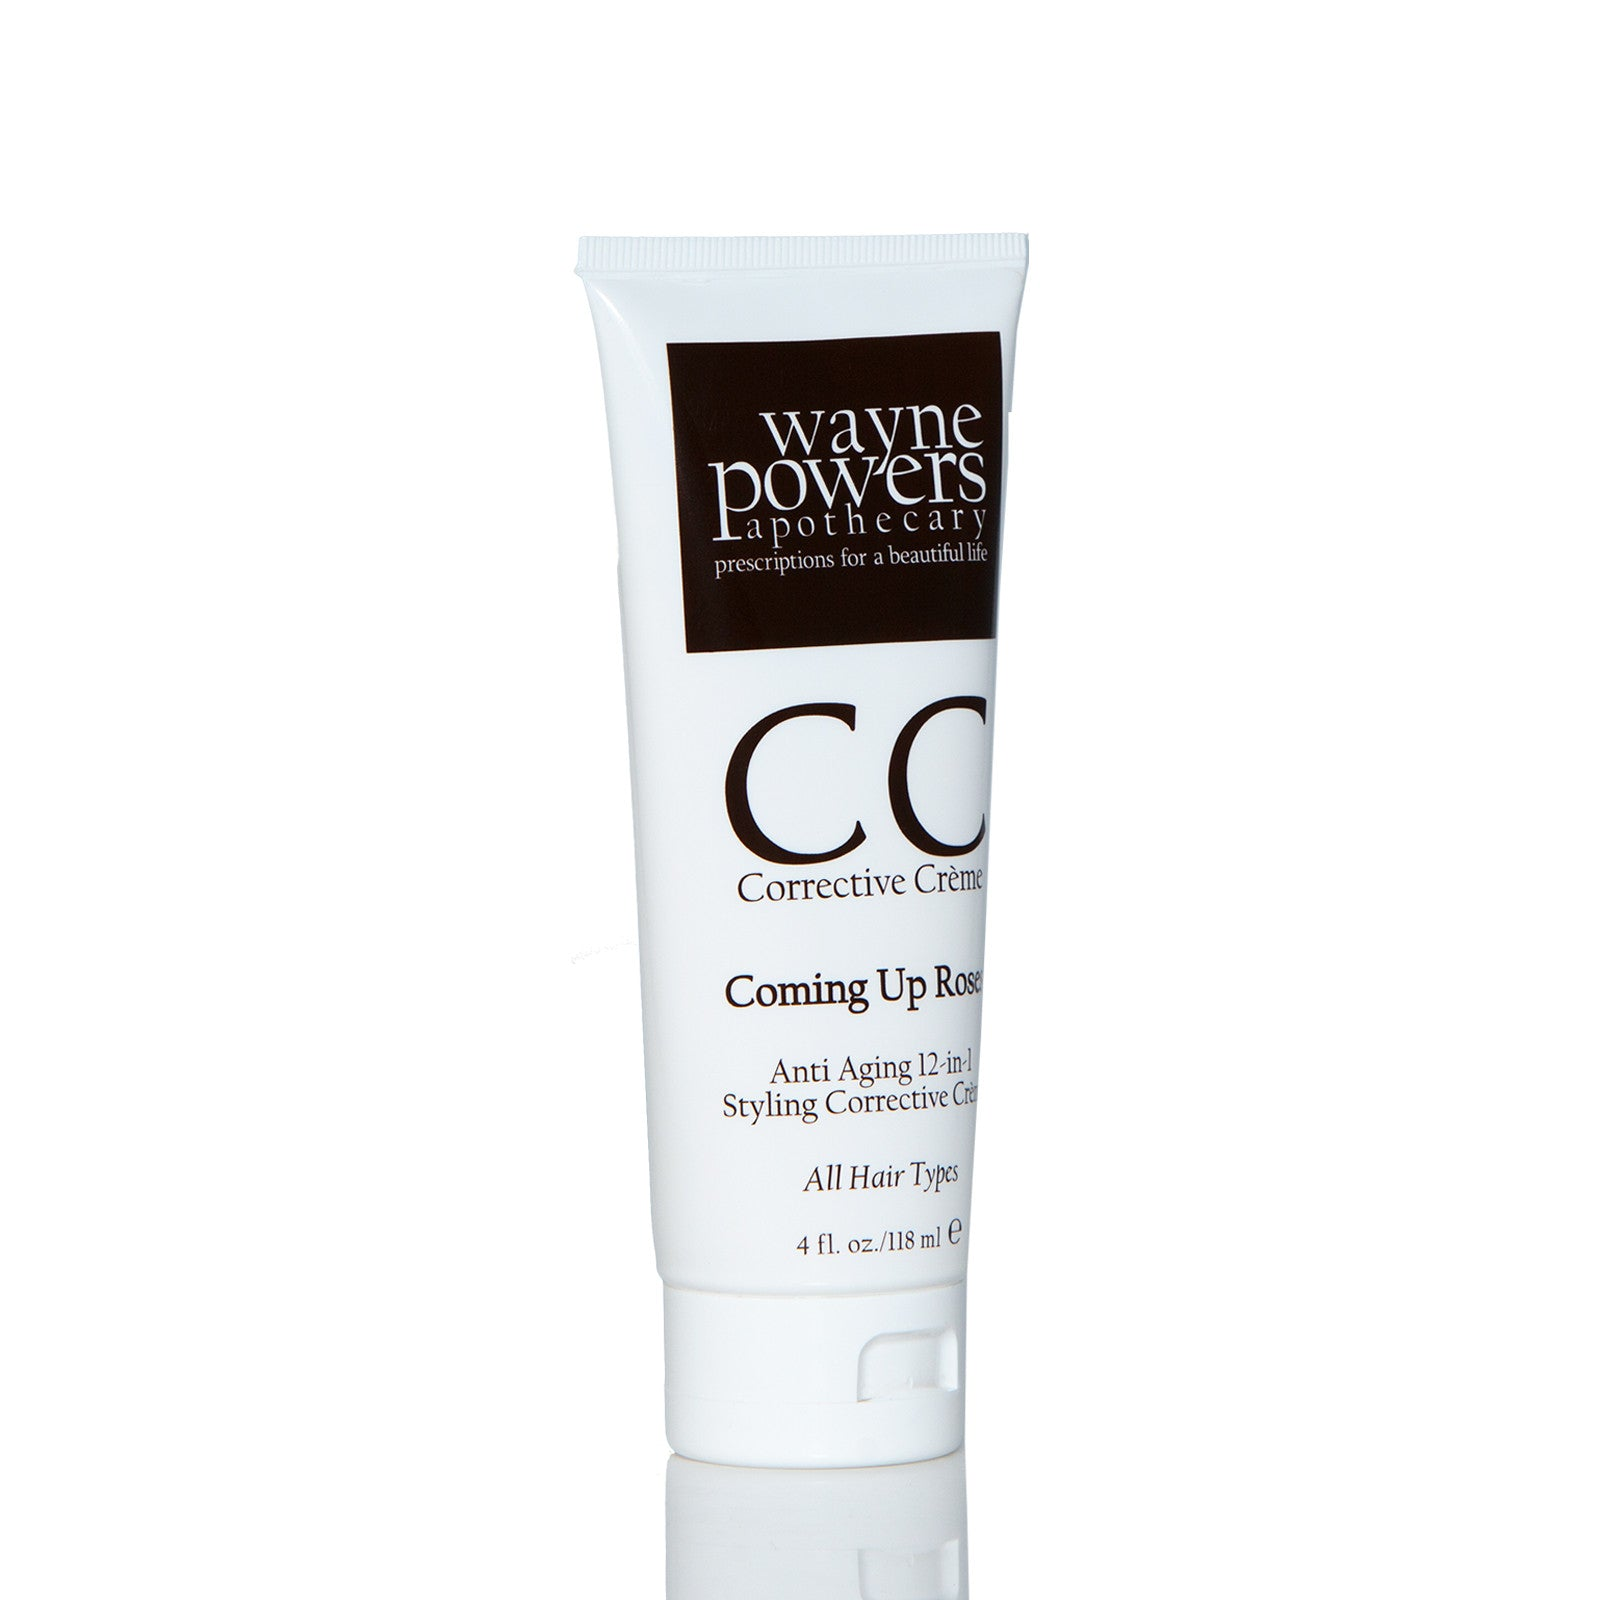 Coming Up Roses Anti-Aging 12-in-1 Styling Corrective Creme by Wayne Powers Apothecary